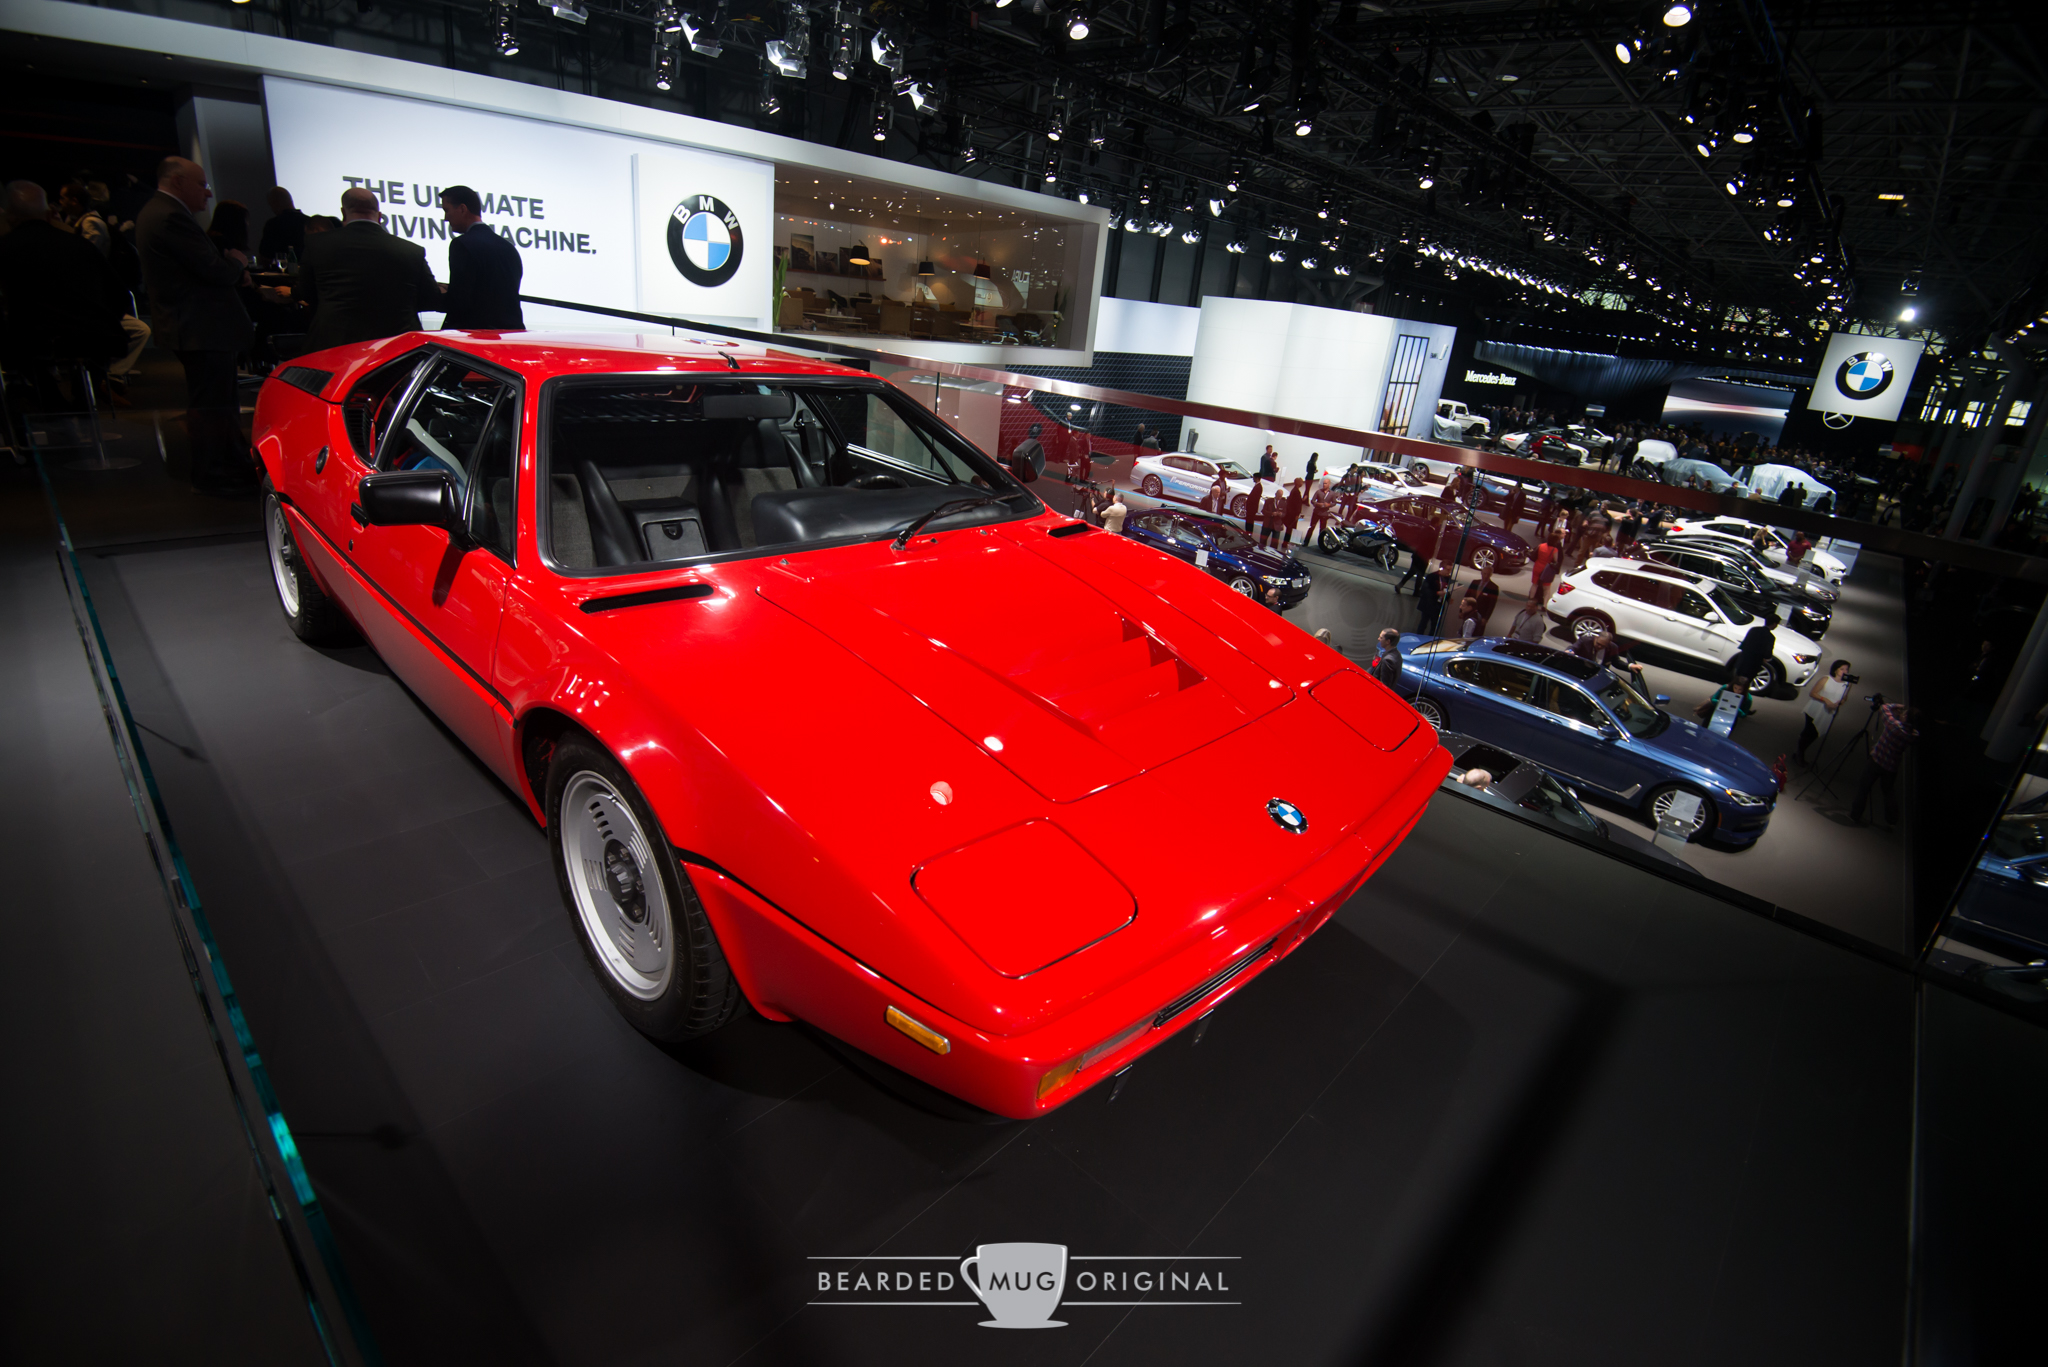 Iconic BMW M1 is on display high above the marque's floorspace.